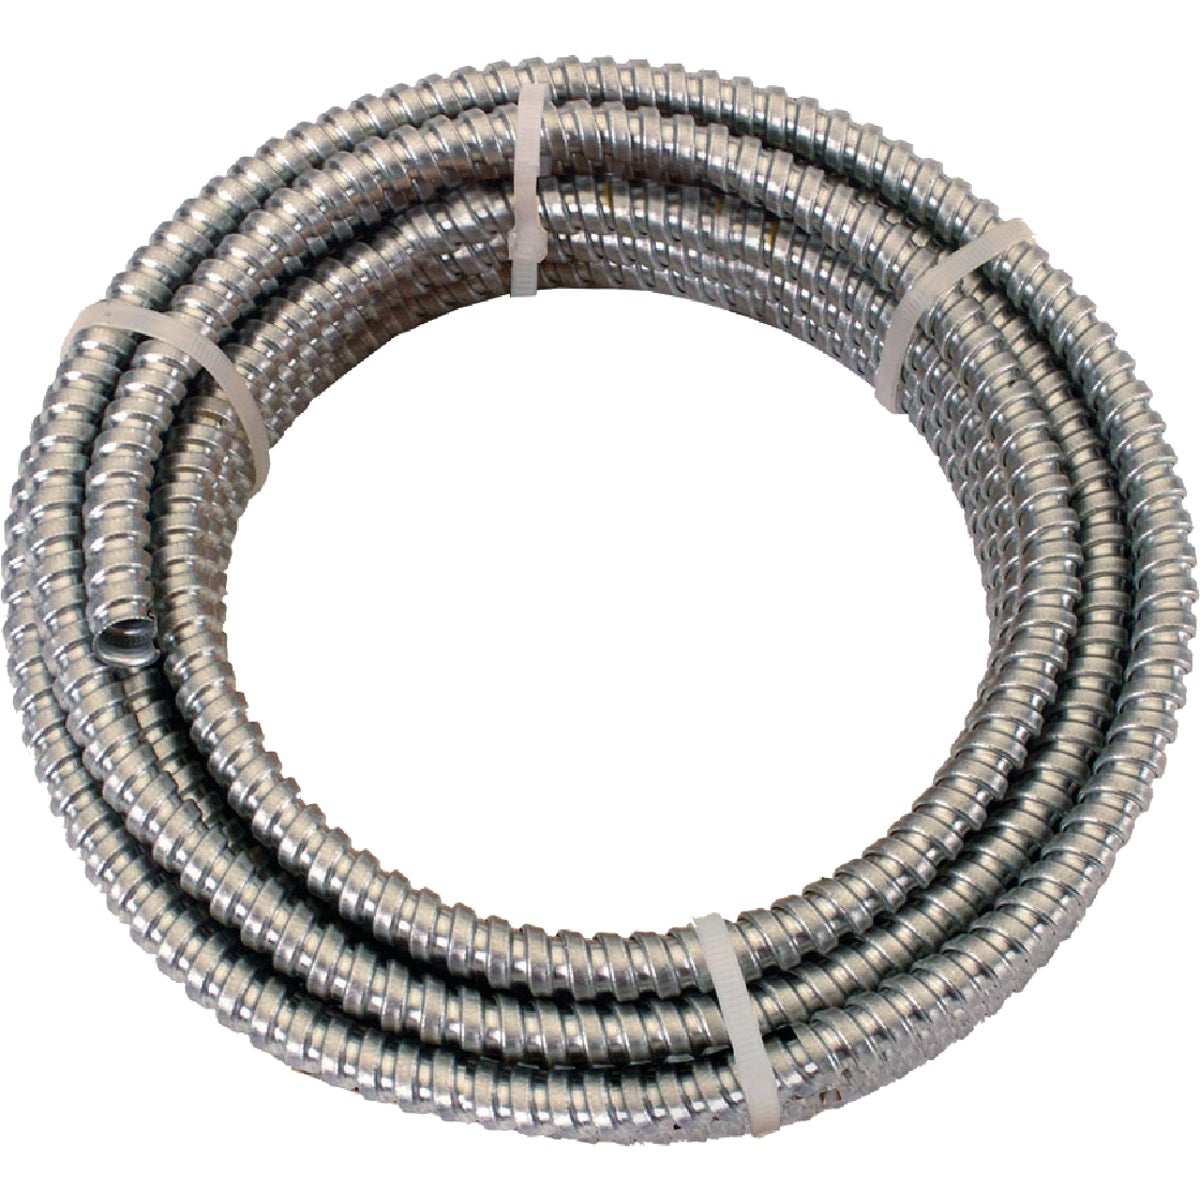 "100' 3/4"" FLEX CONDUIT - 55082303 by Southwire Company"